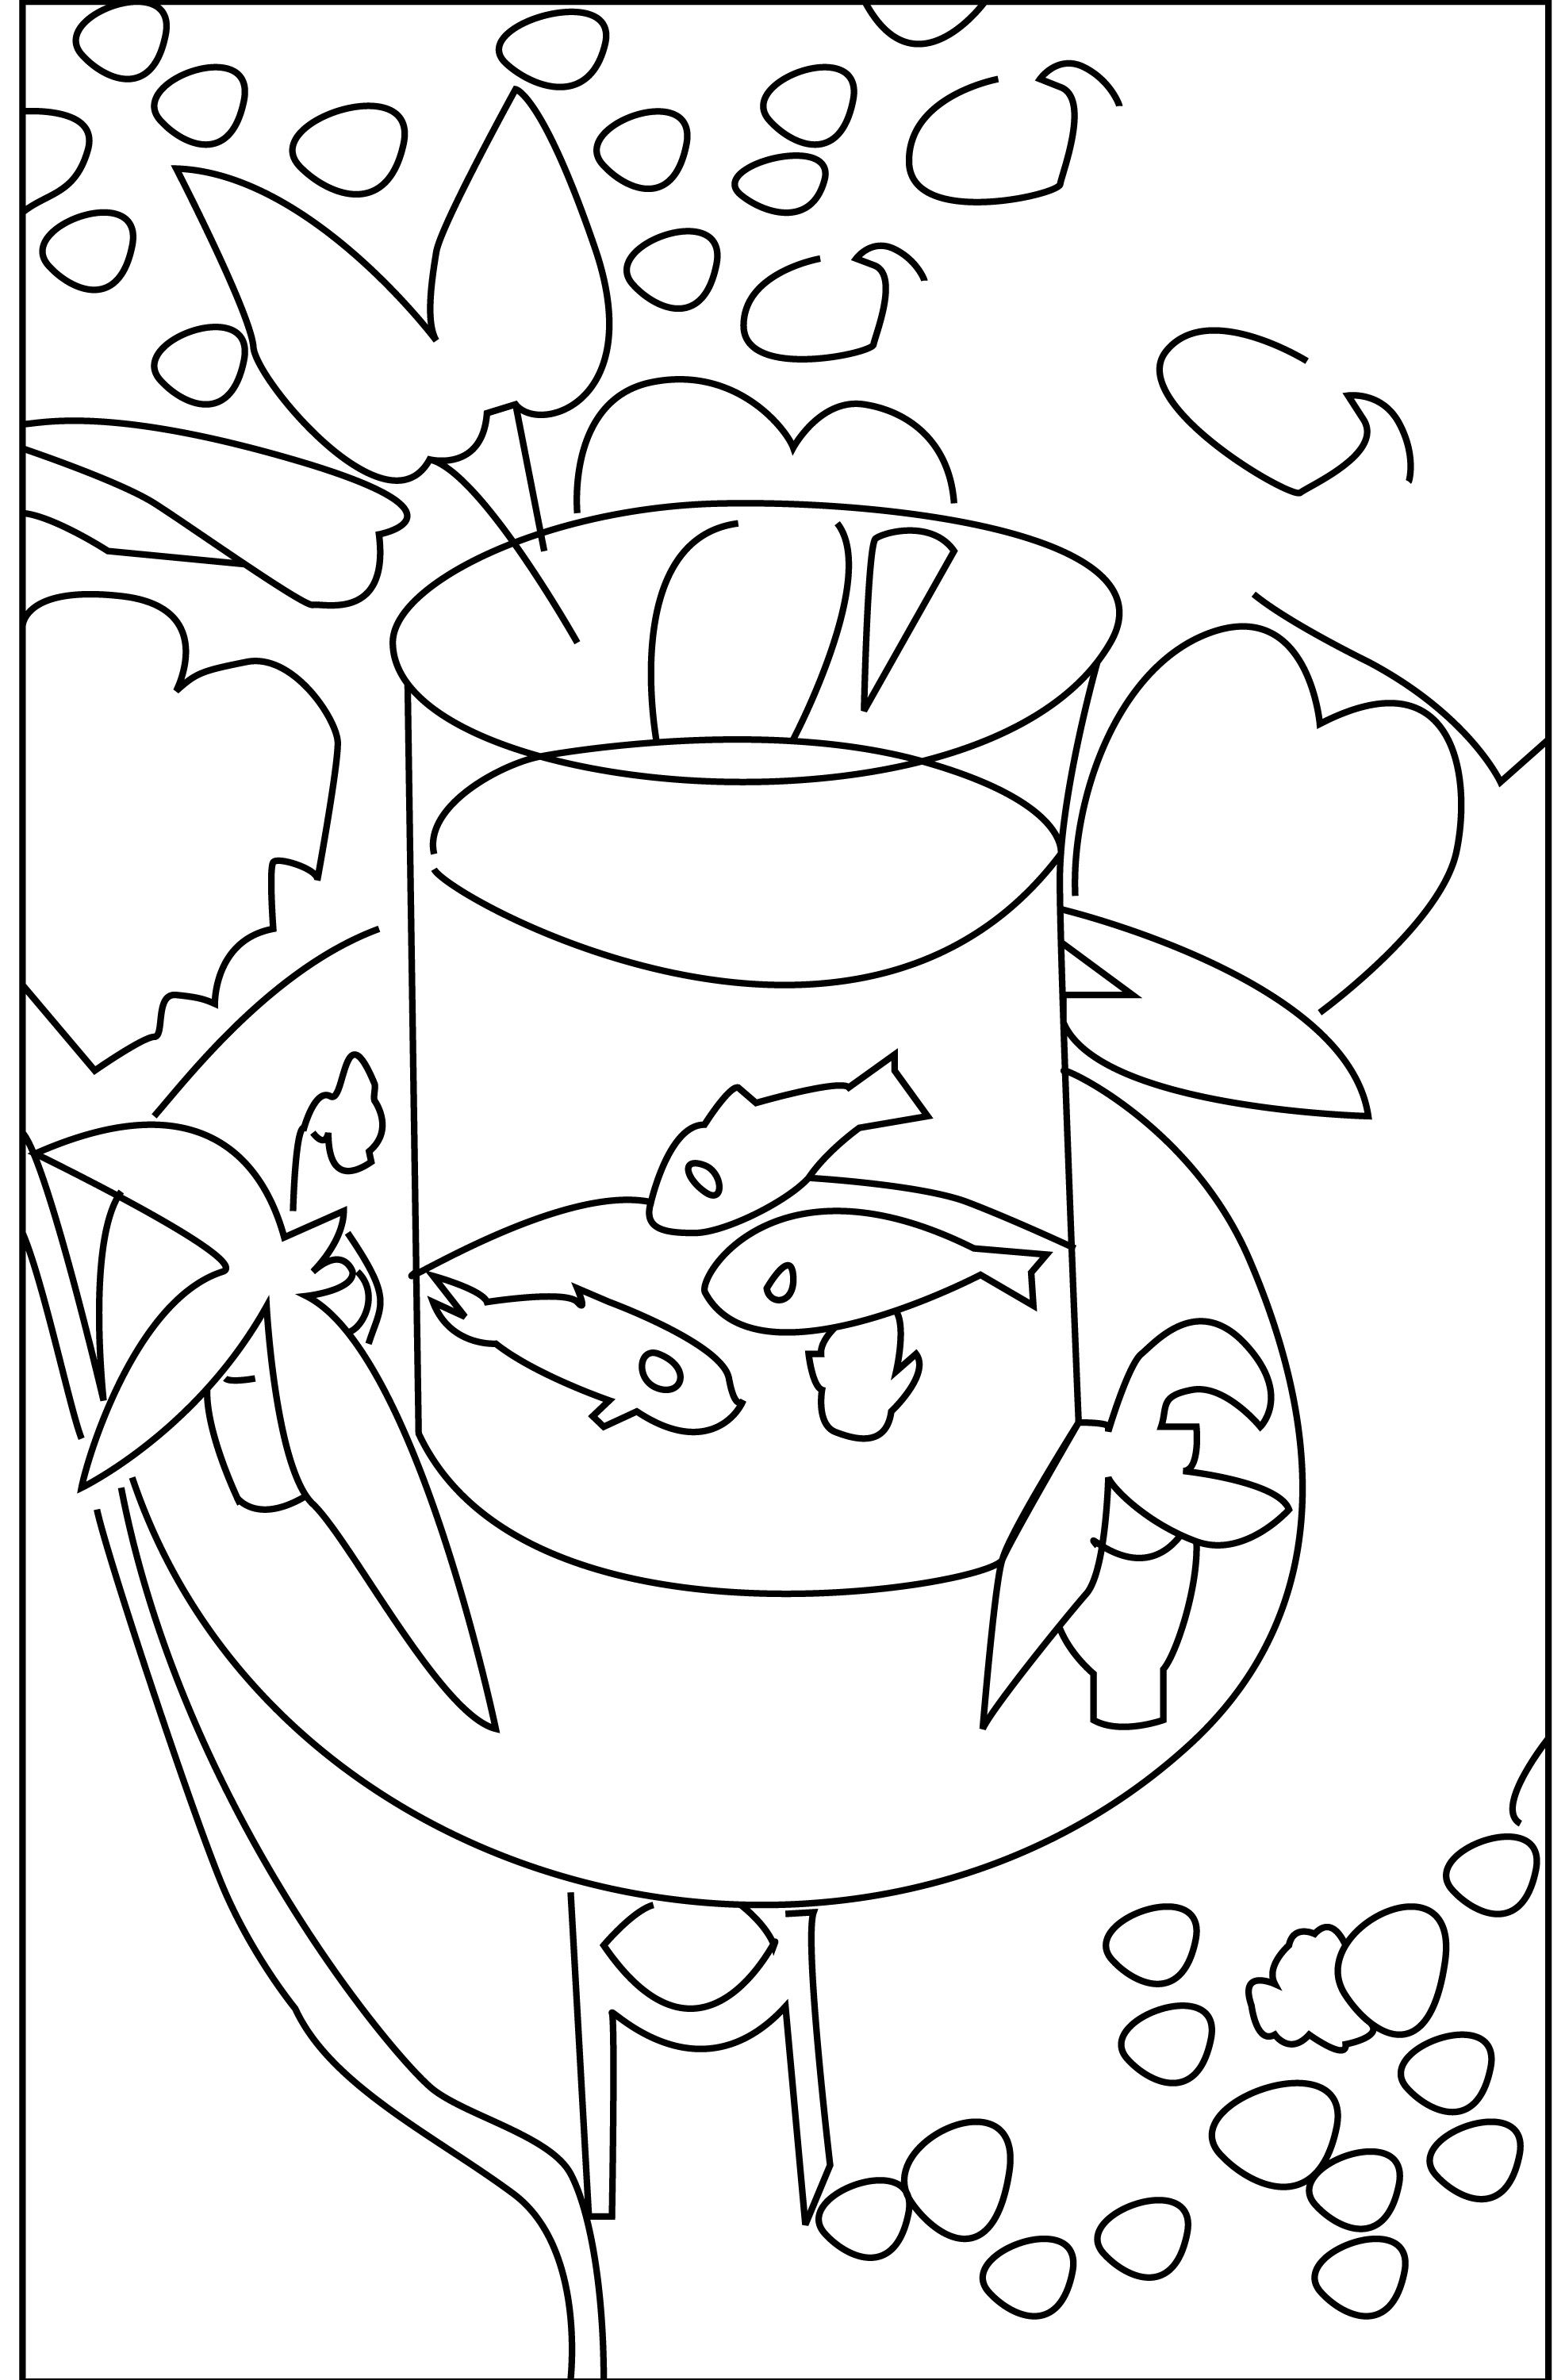 Coloring Book Matisse S Gold Fish